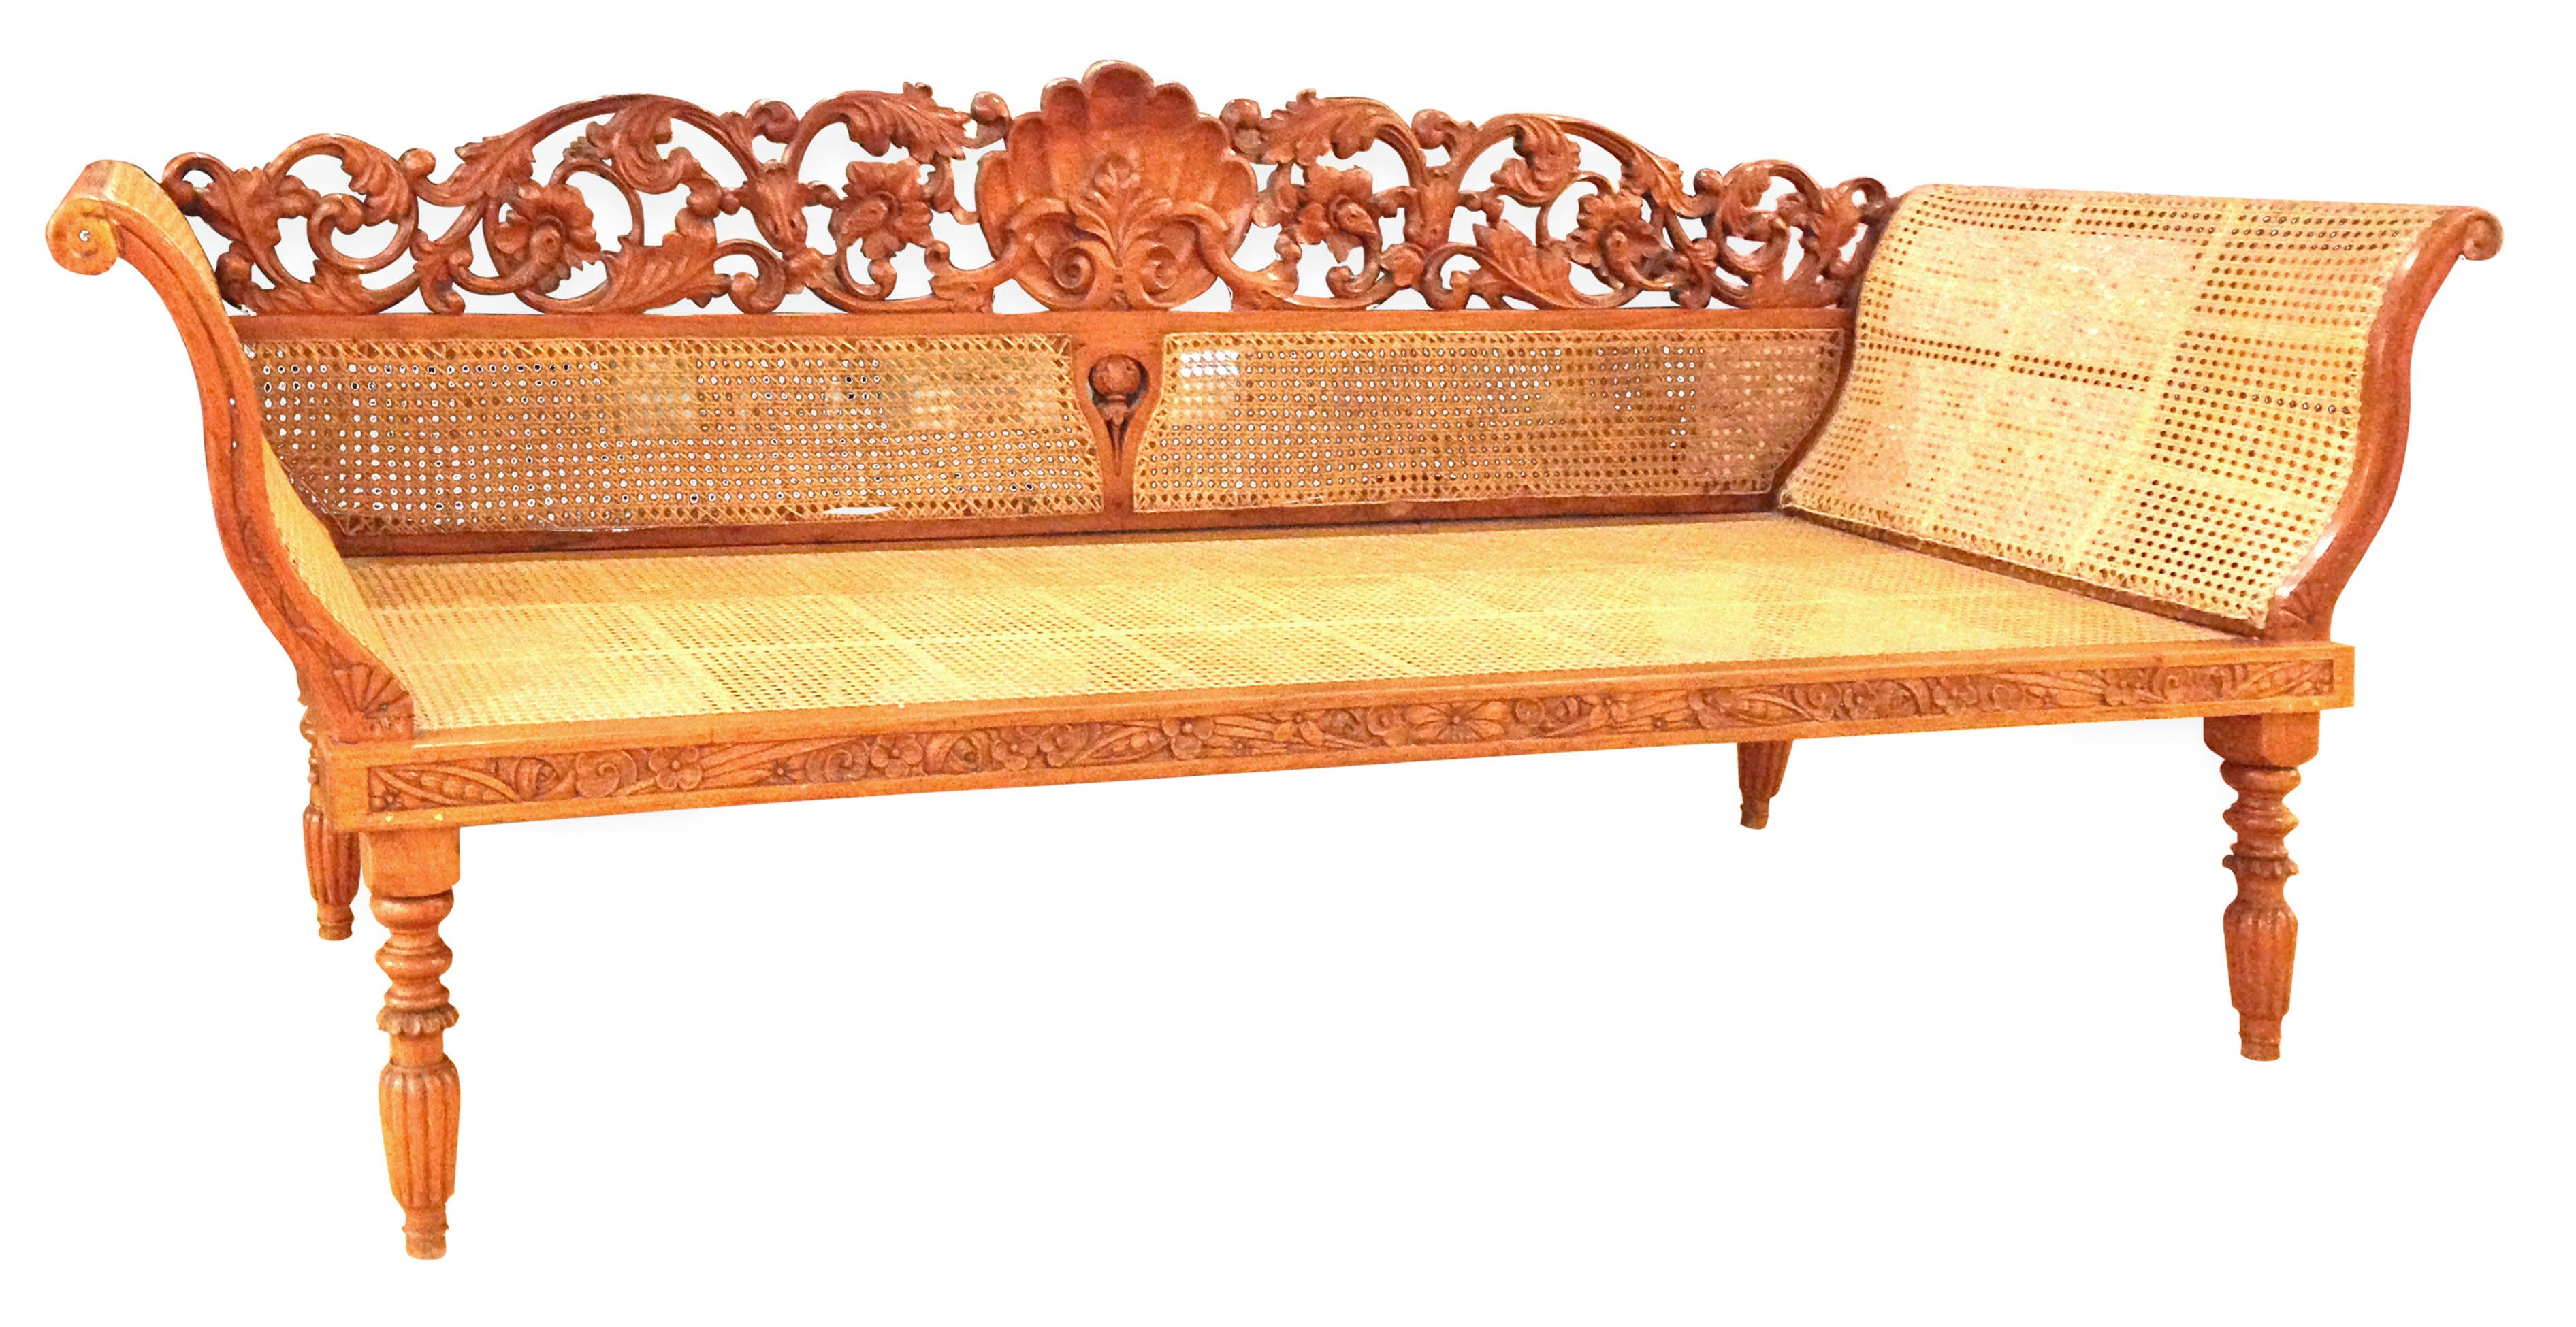 Sofa Bed For Sale Tarlac Divan C 19th Century Miscellaneous Antique Furniture In 2019